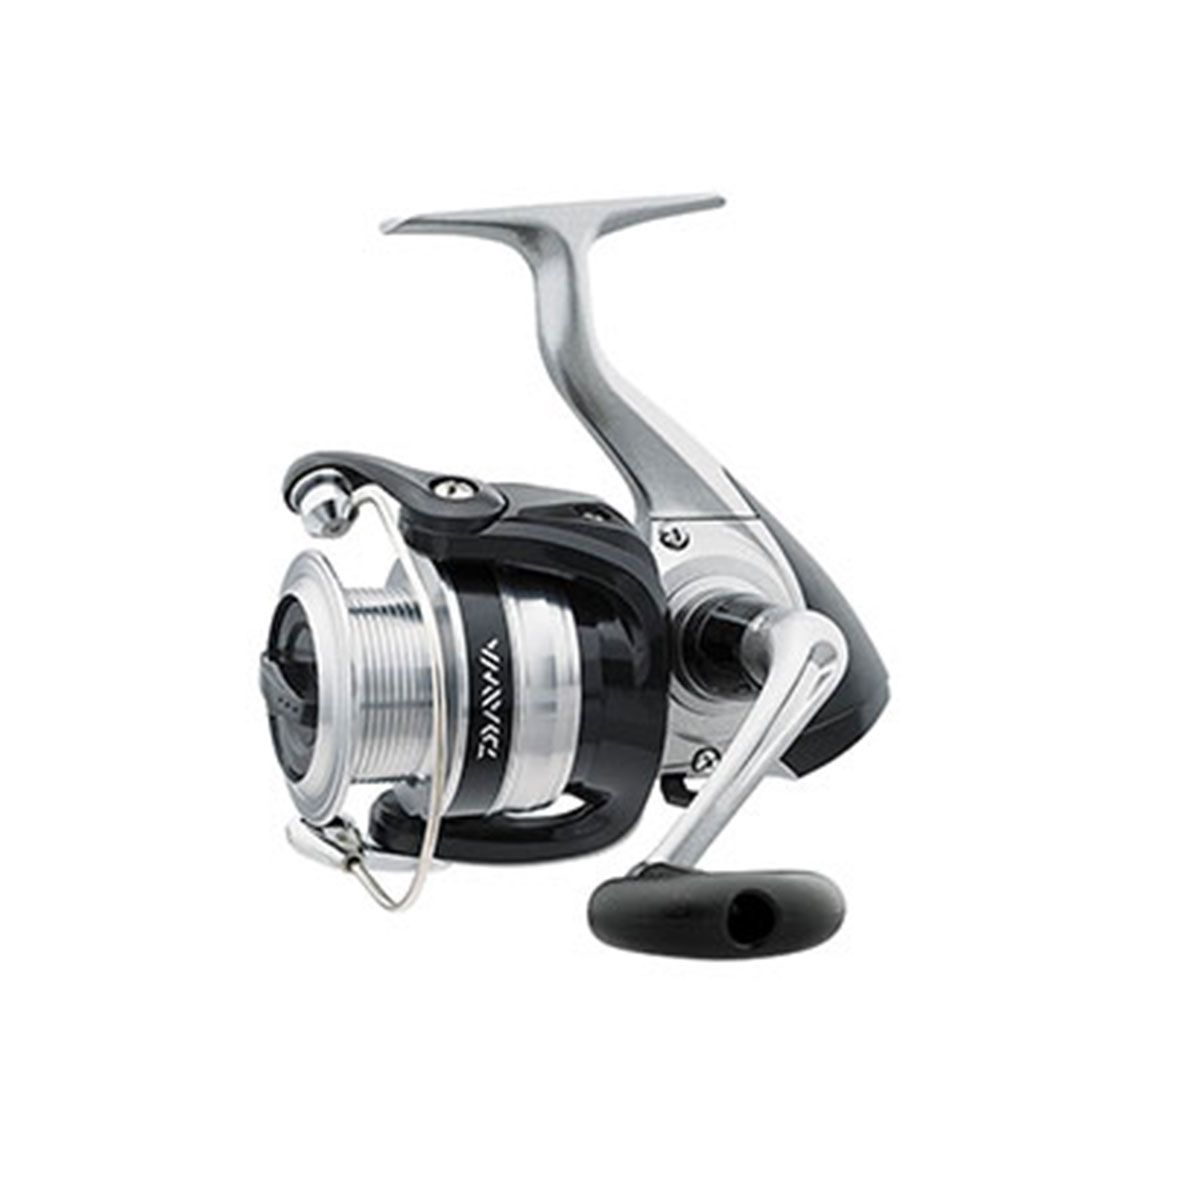 Molinete Daiwa Strikeforce SF-2500B